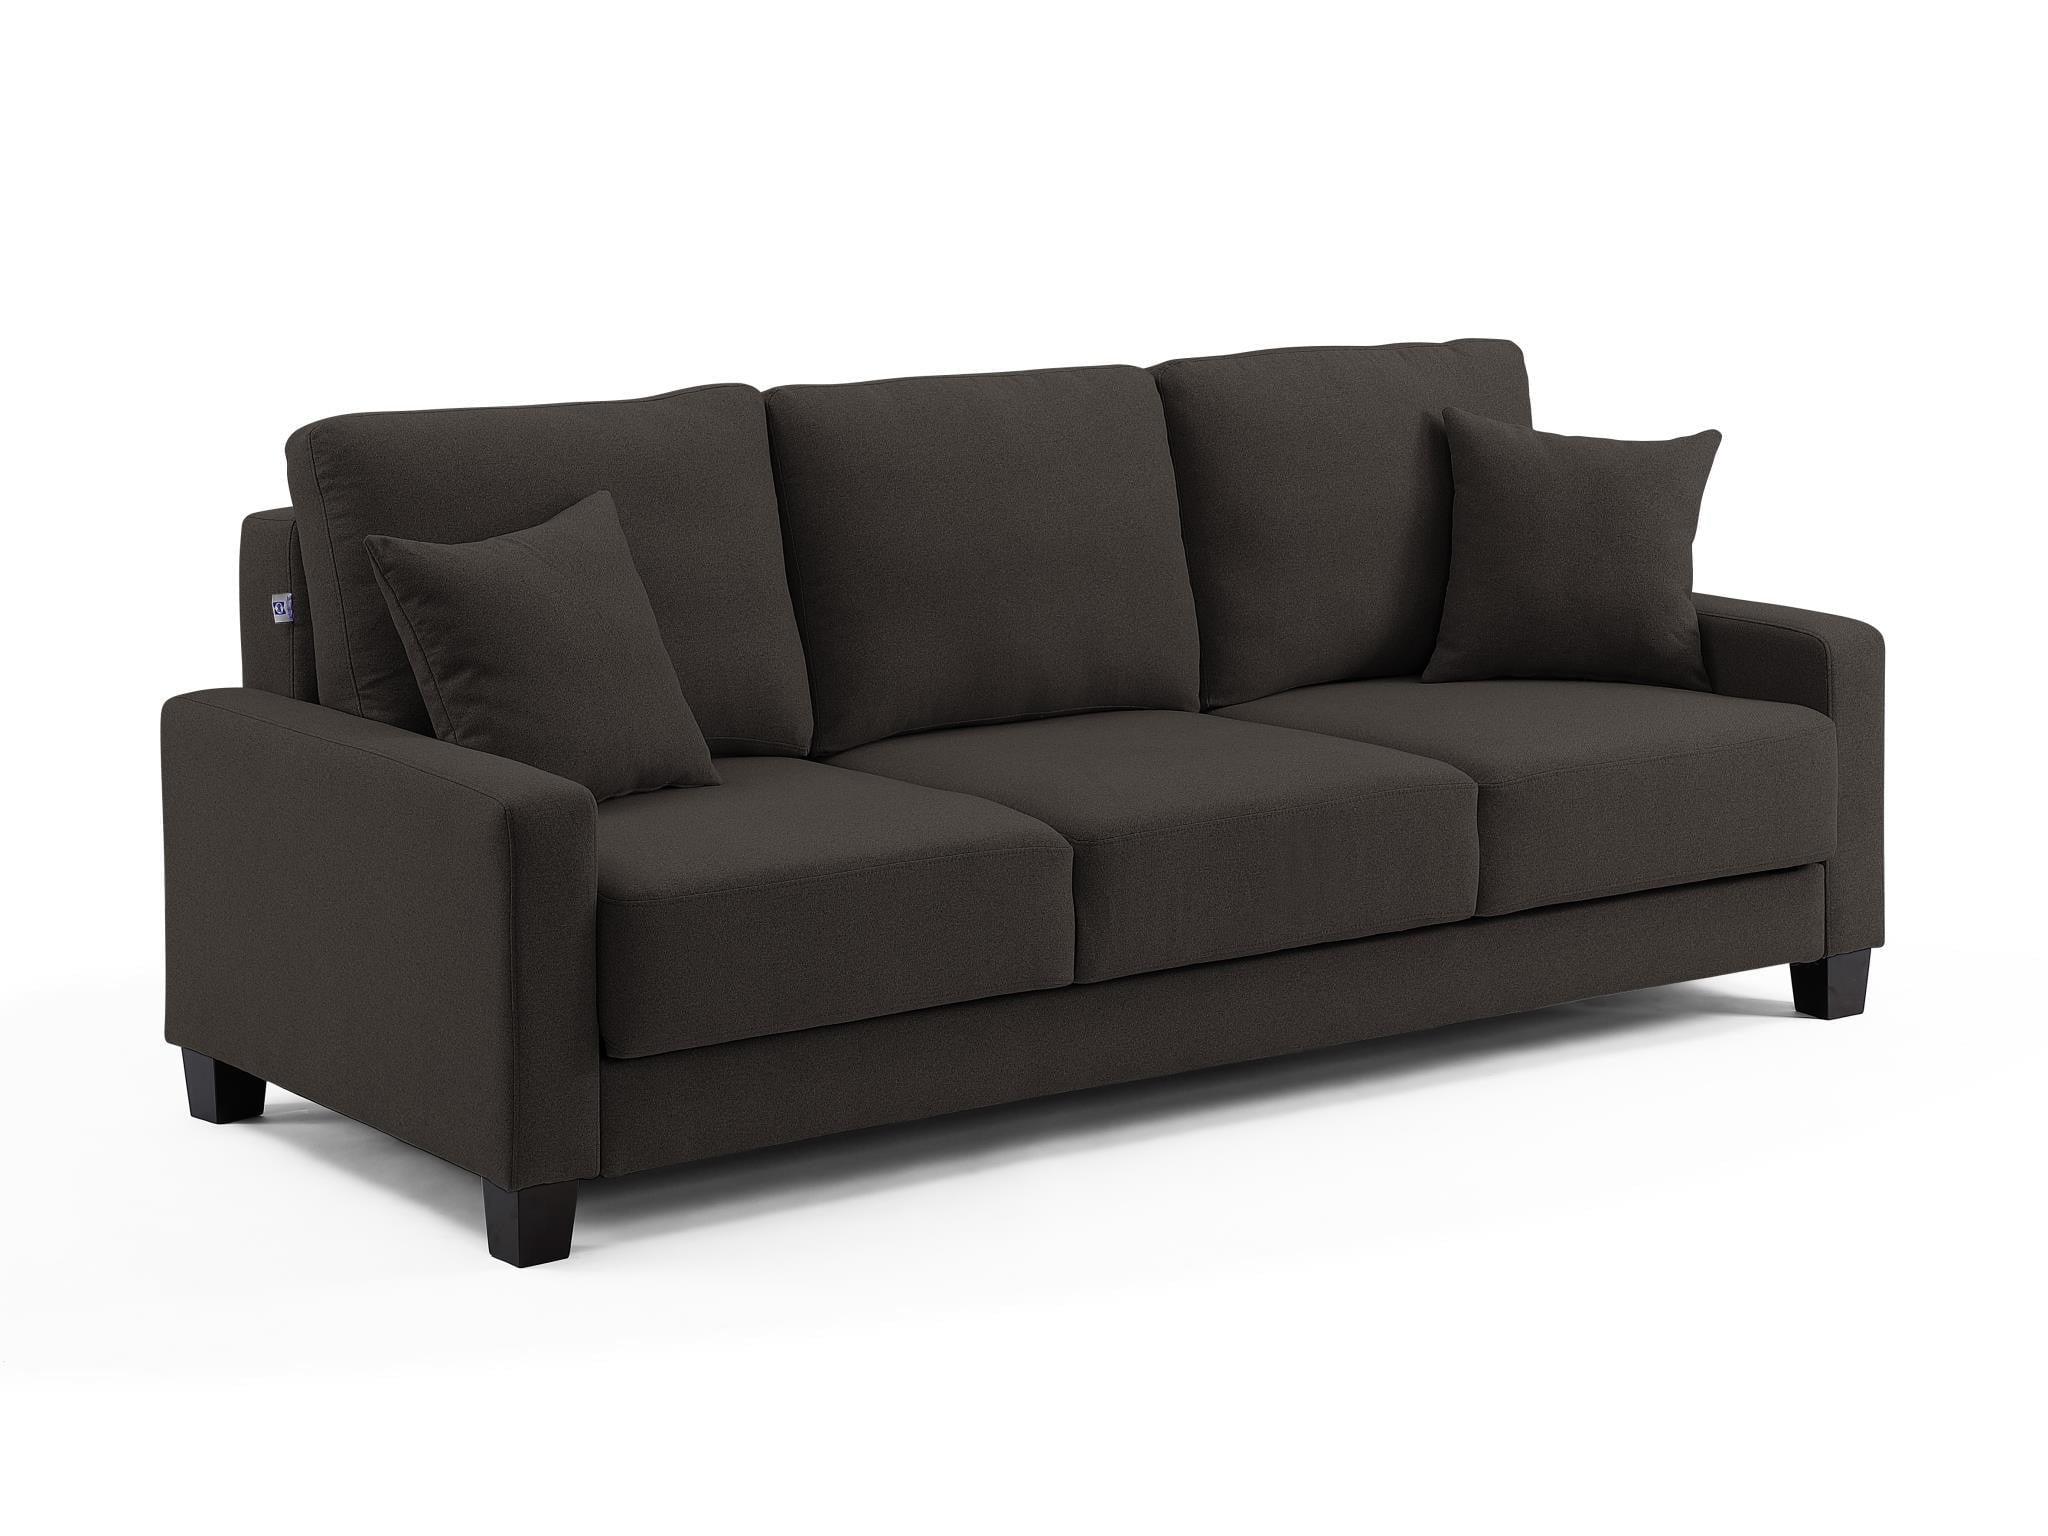 Fabulous Barletta Full Size Sealy Sofa Sleeper Convertible Sofa Gmtry Best Dining Table And Chair Ideas Images Gmtryco